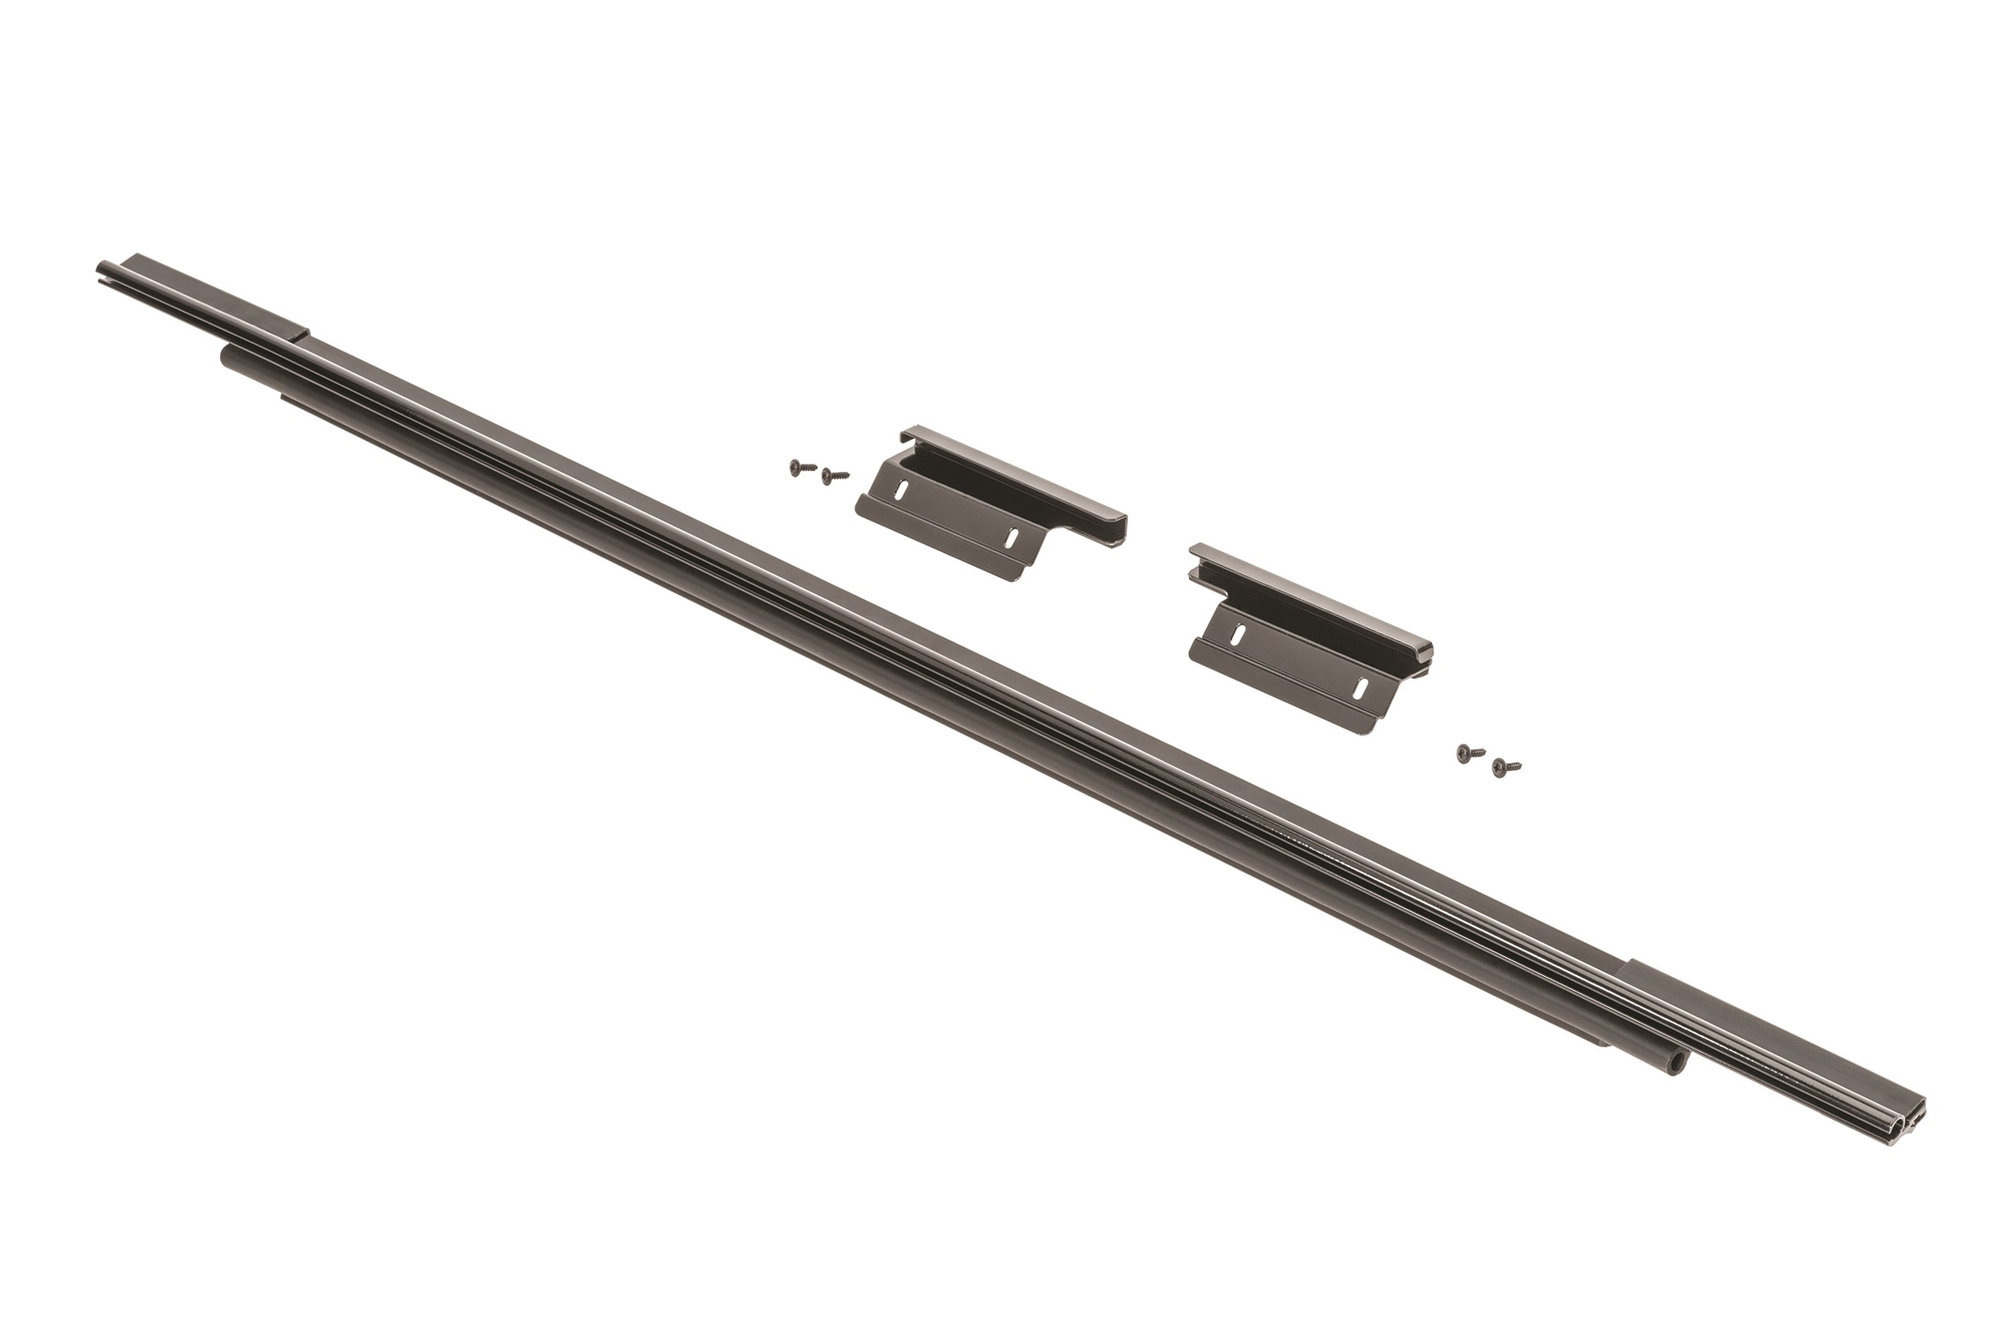 MasterTop 15420201 Door Surround with Tailgate Bar Kit for